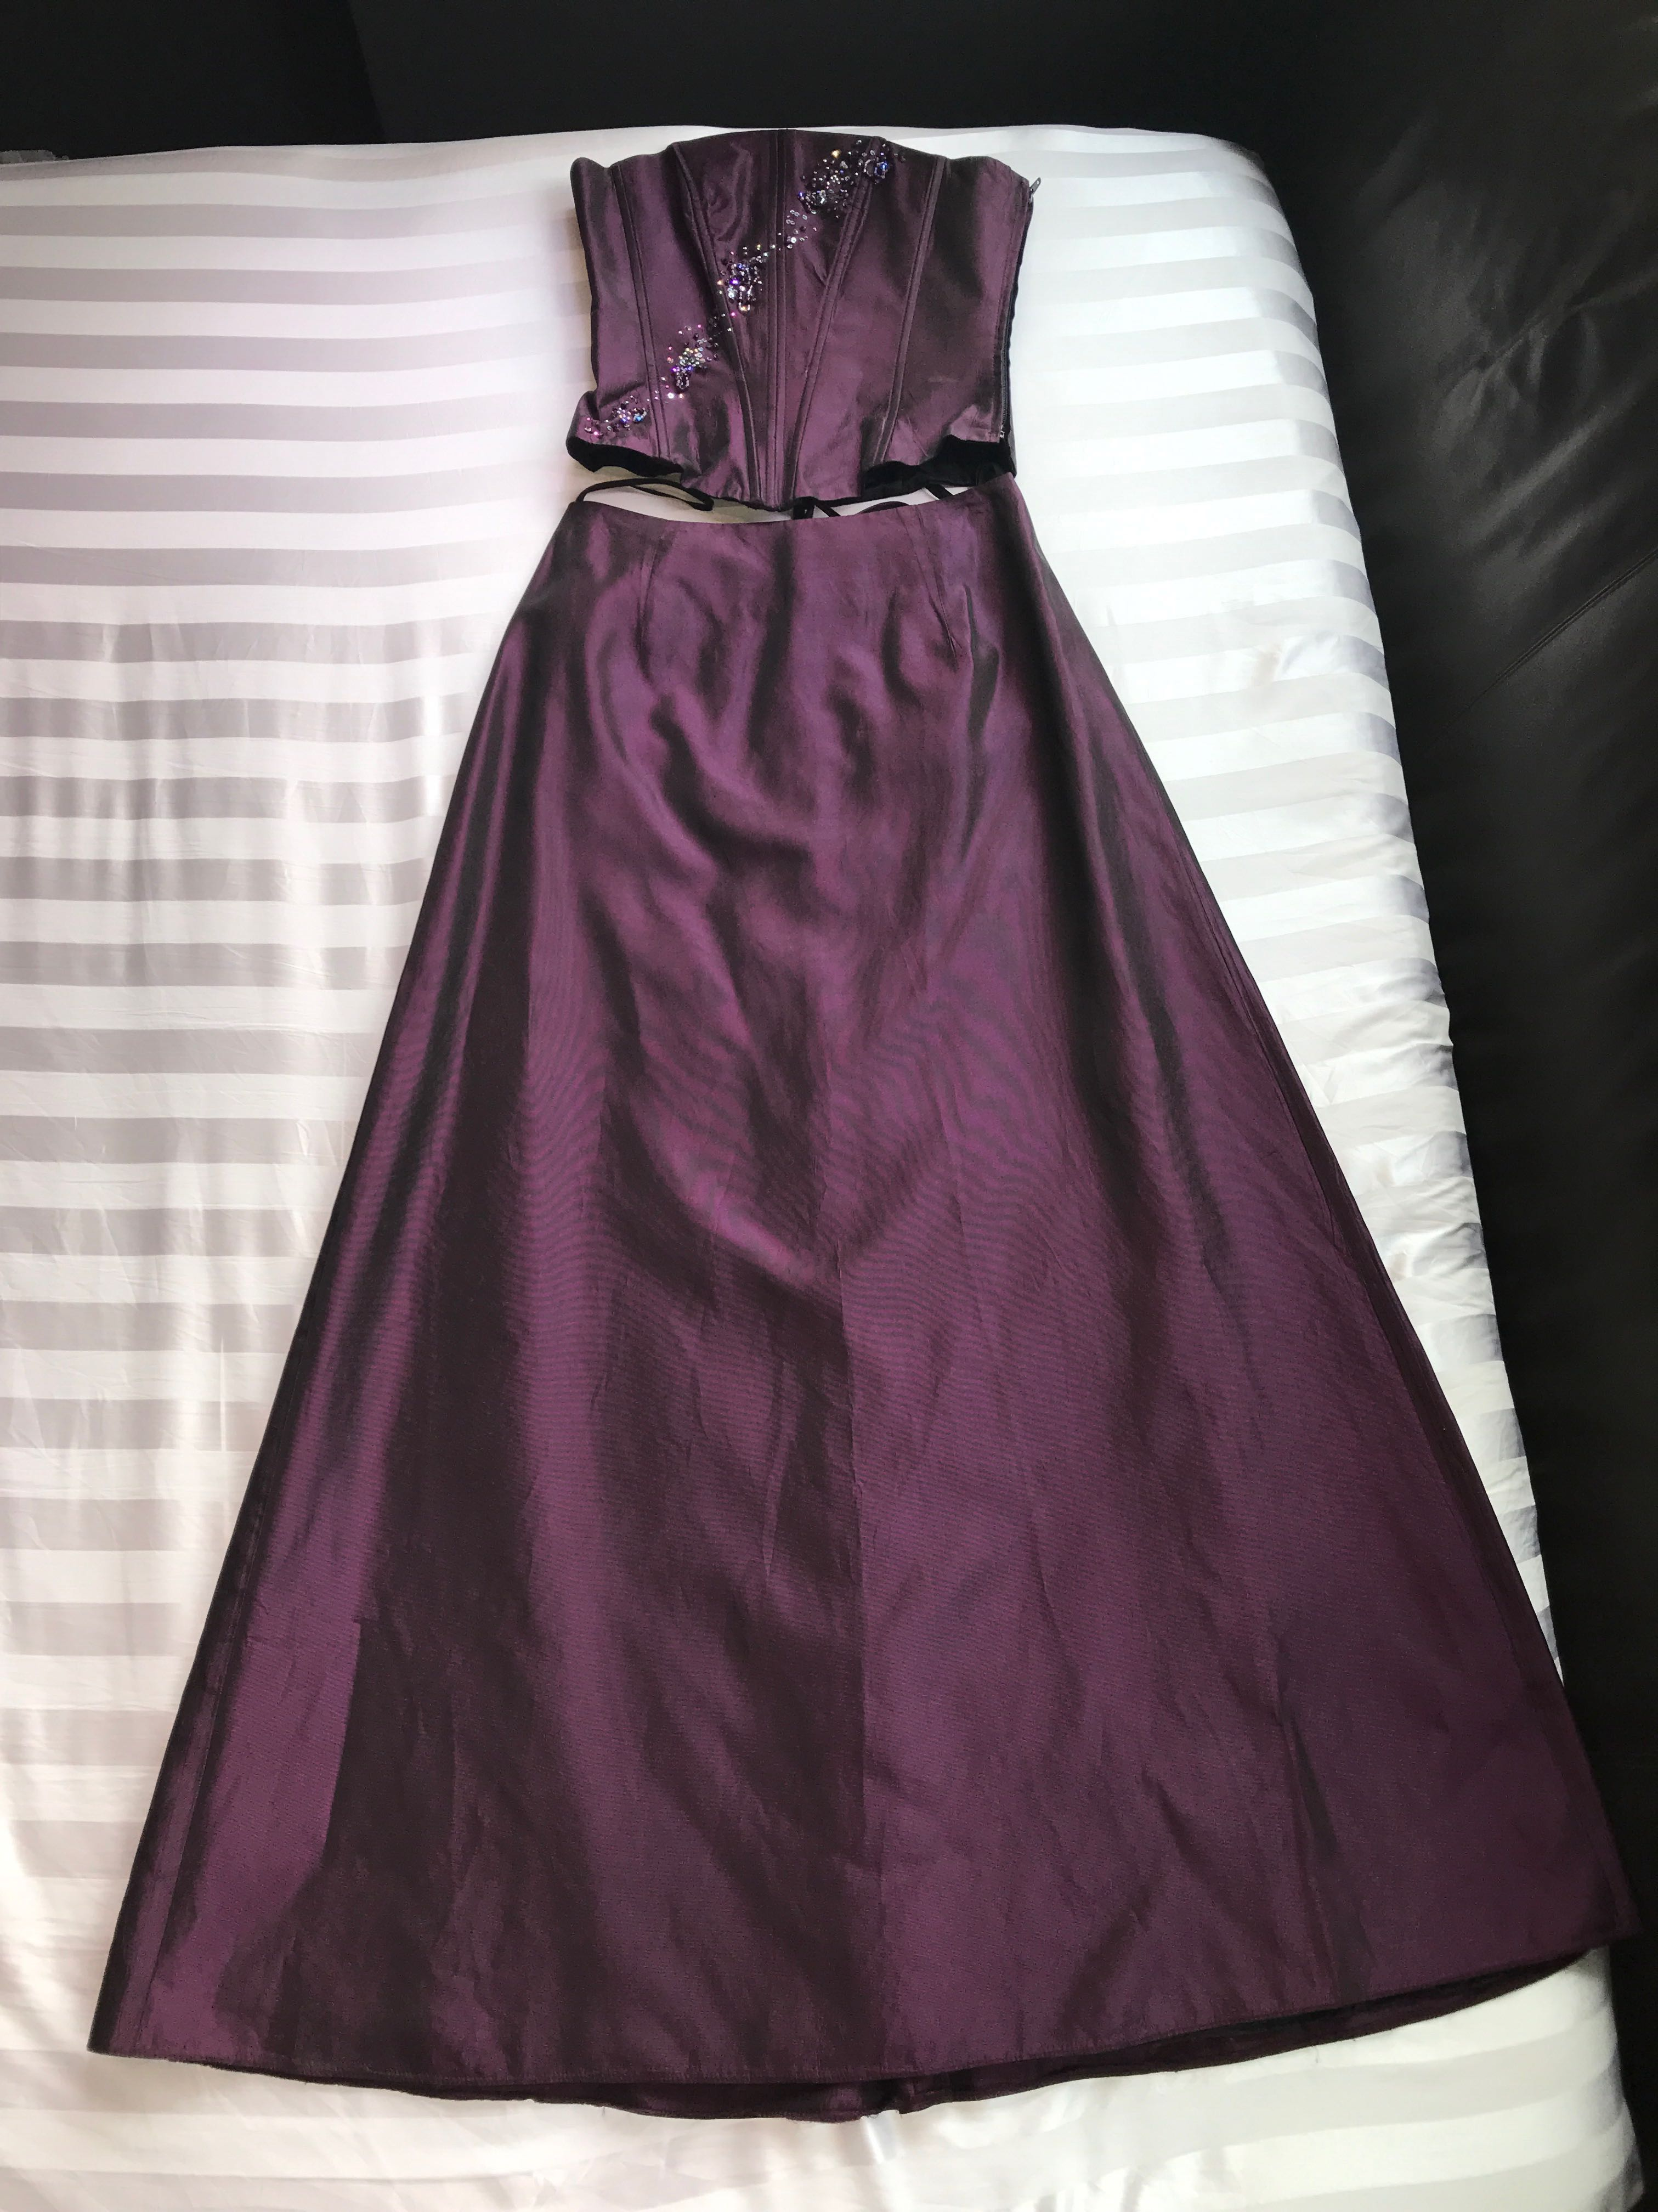 341fcbfd053 Iridescent Purple 2-Piece Gown Set  Embellished Corset Top   Full ...